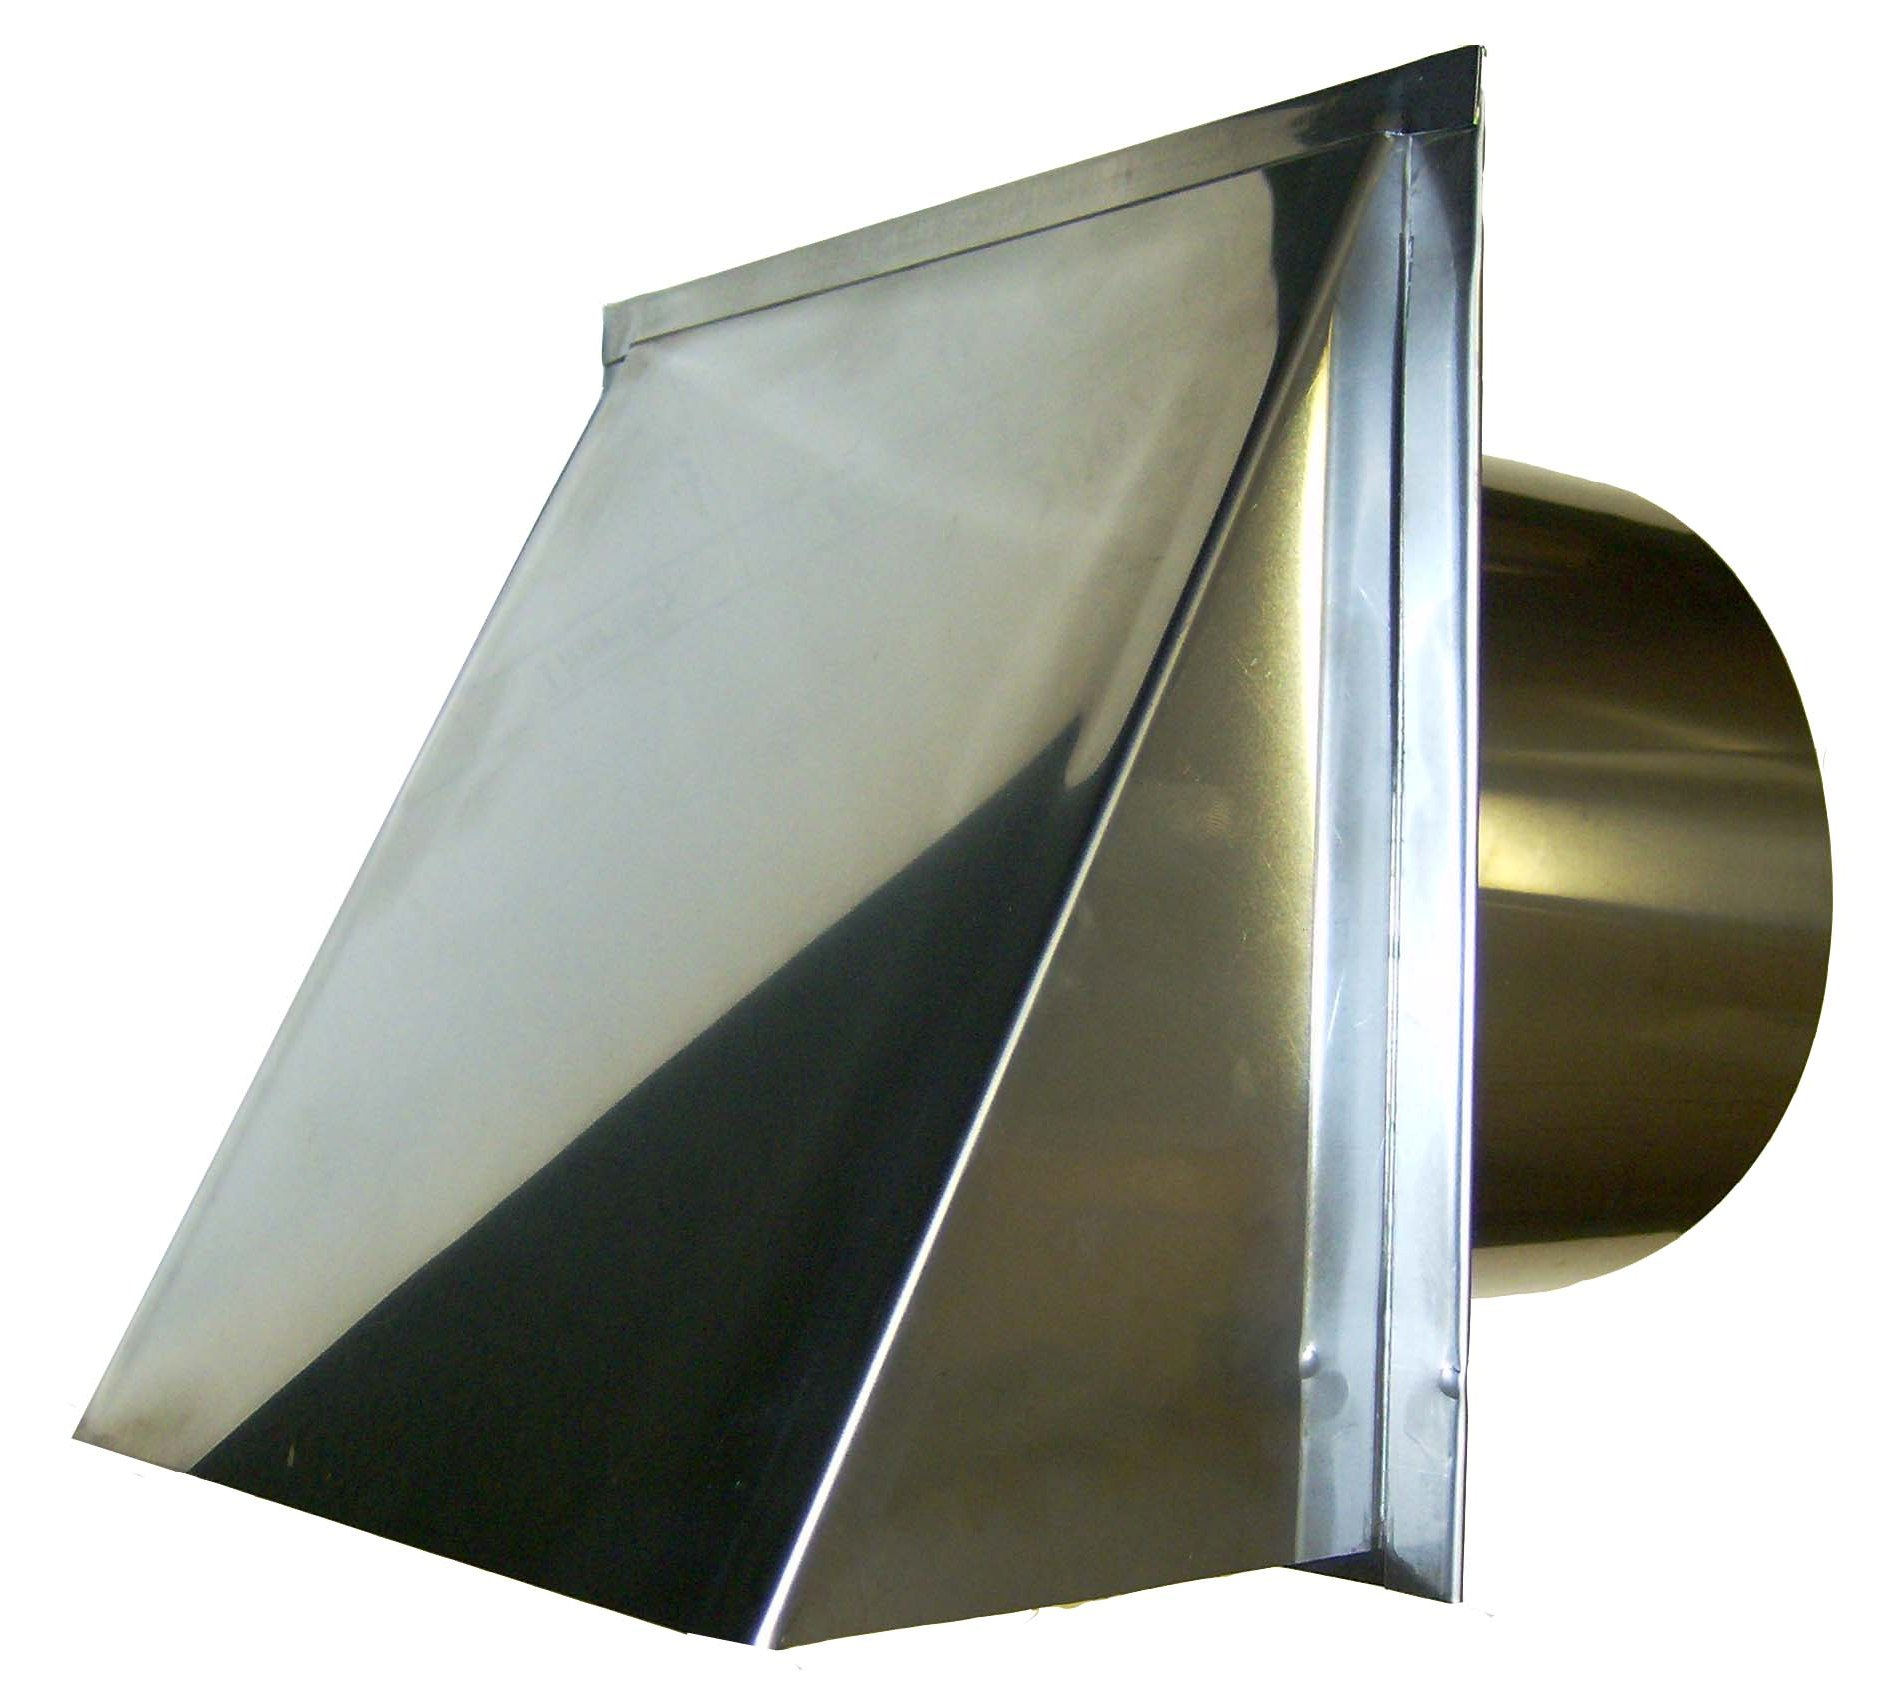 10 inch stainless wall mount range vent for Exterior vent covers